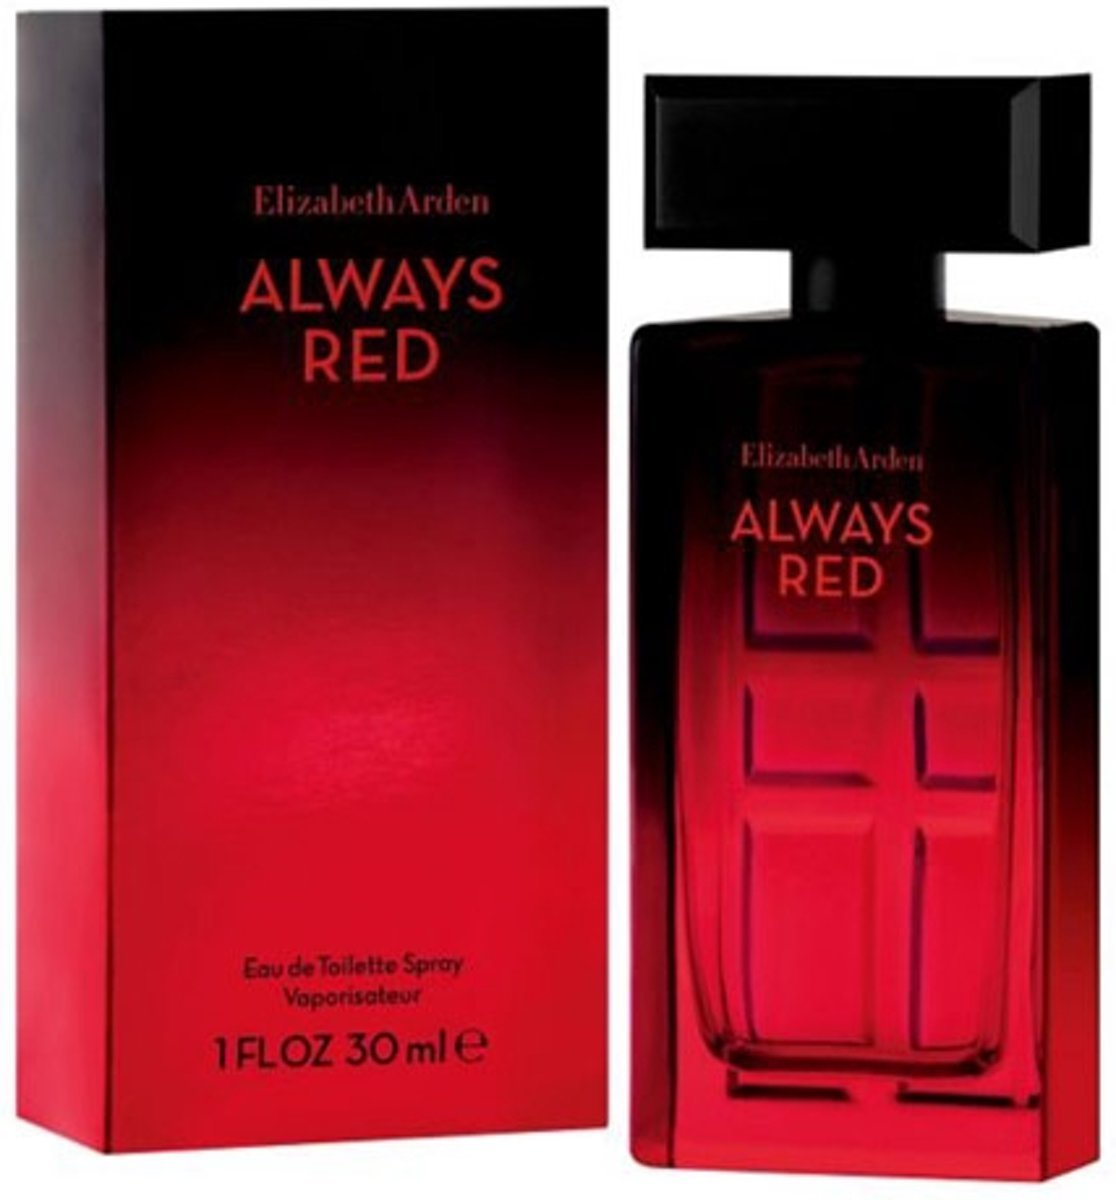 Elizabeth Arden Eau De Toilette Always Red 30 ml - Voor Vrouwen